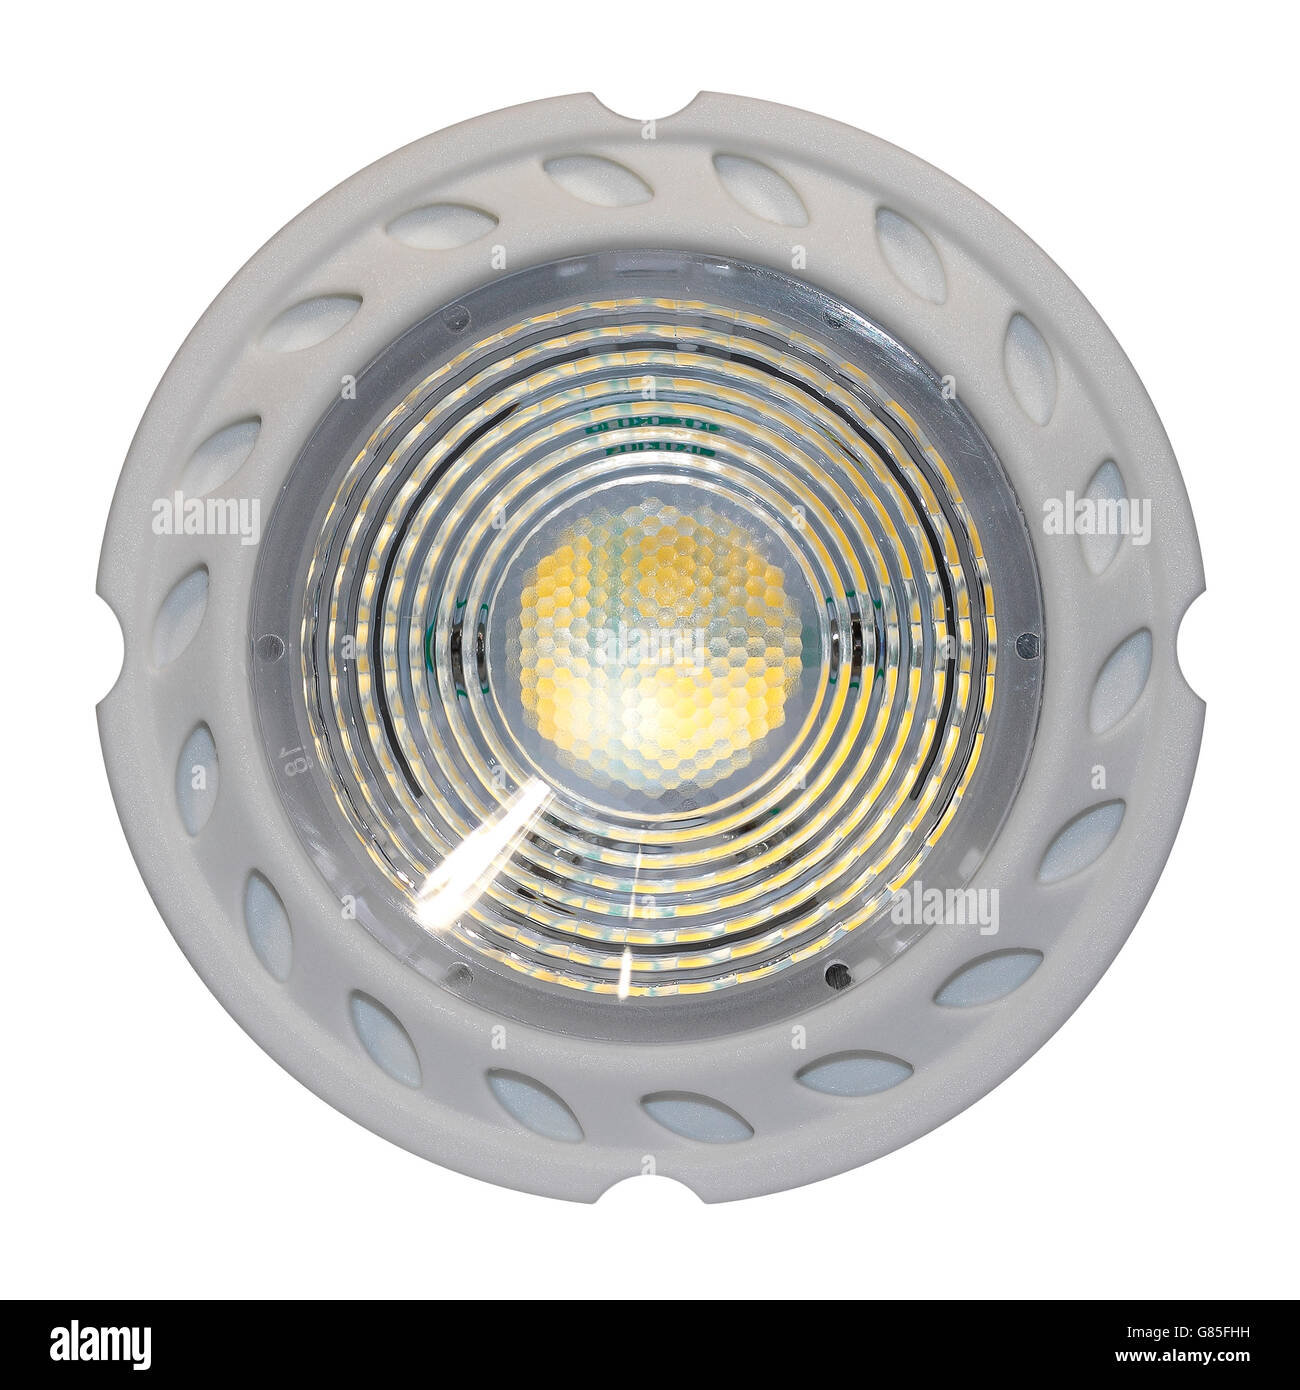 GU10 LED Electric Light Bulb - close up - front - Stock Image